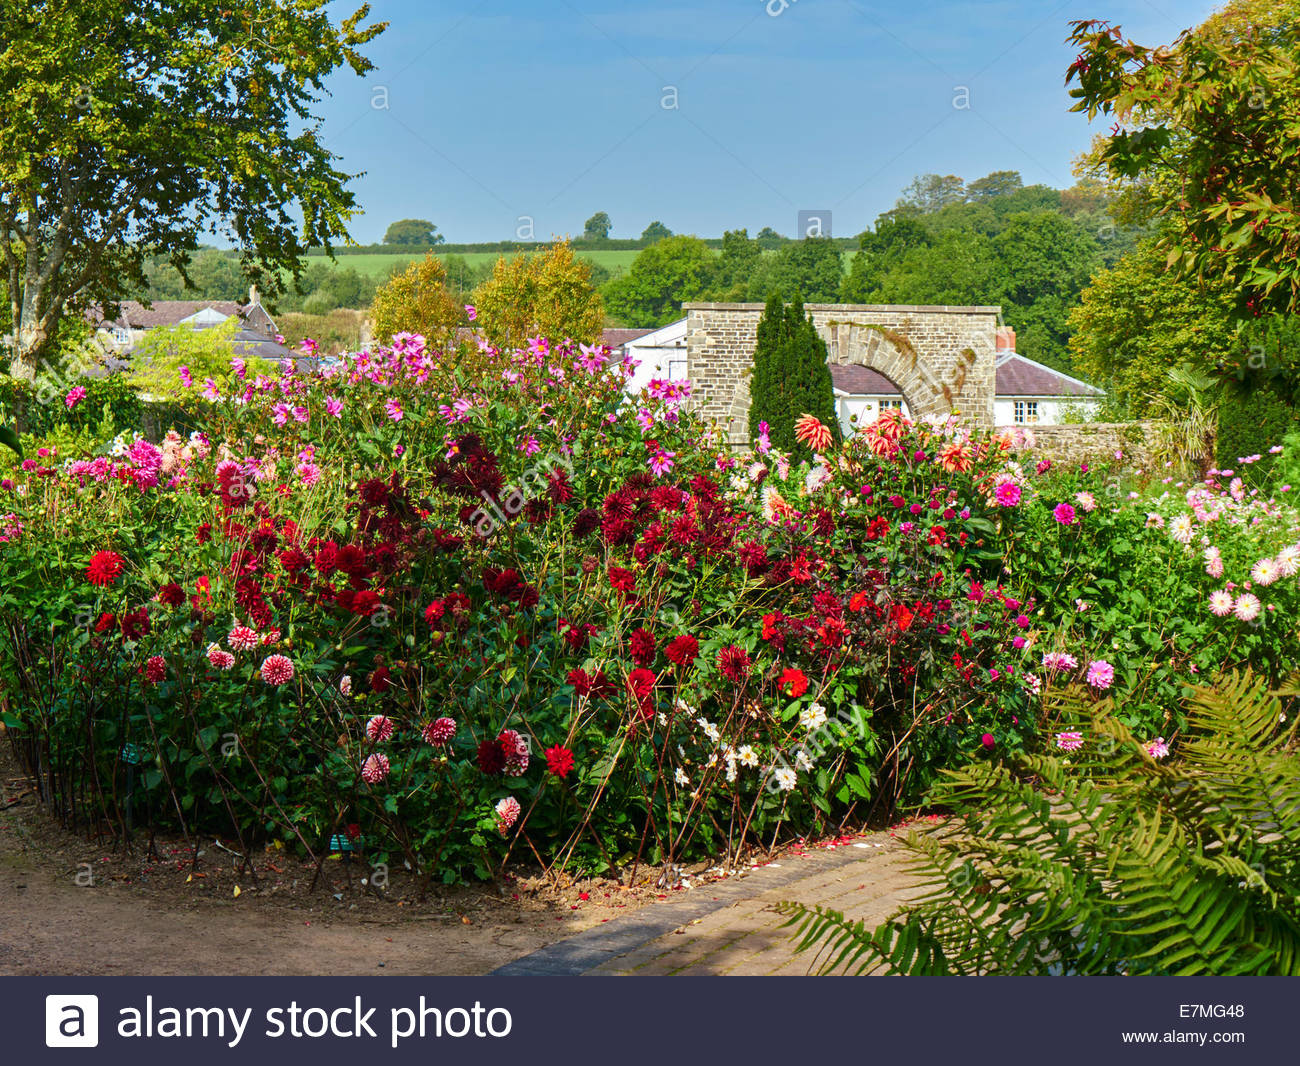 Dahlia Flower Bed In The National Botanic Garden Of Wales Stock Photo Alamy